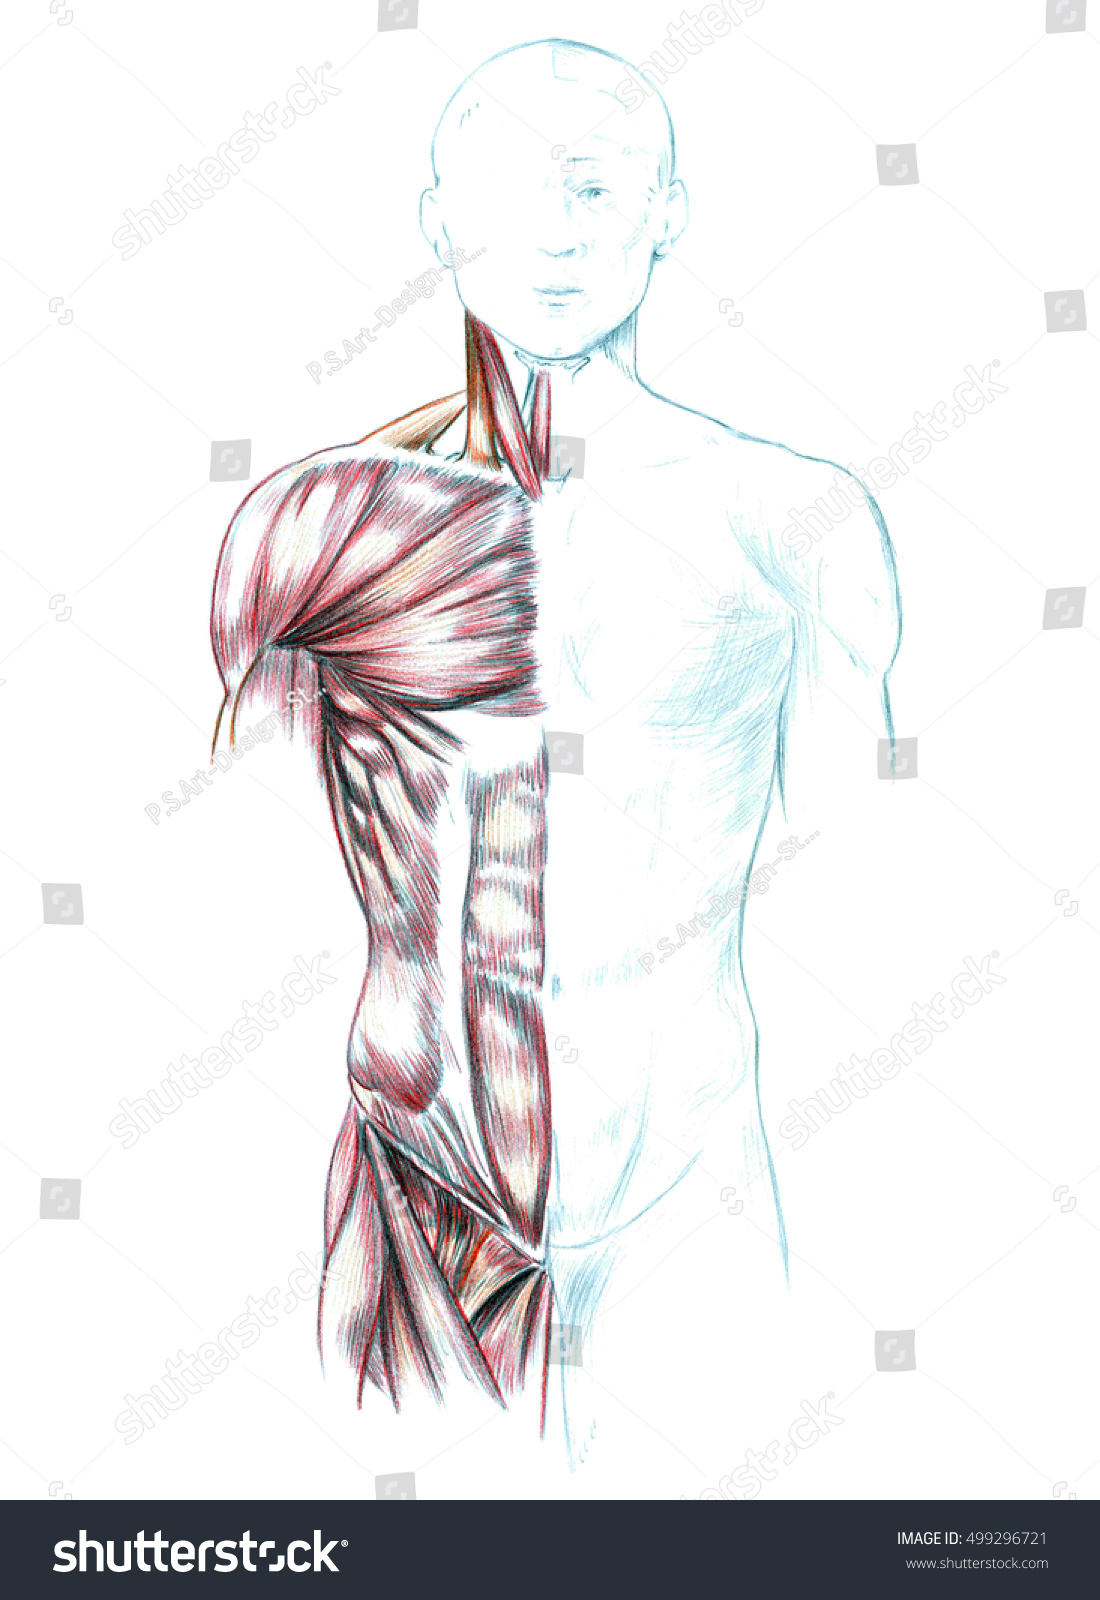 Muscles Neck Shoulders Chest Abdomen Hand Stock Illustration